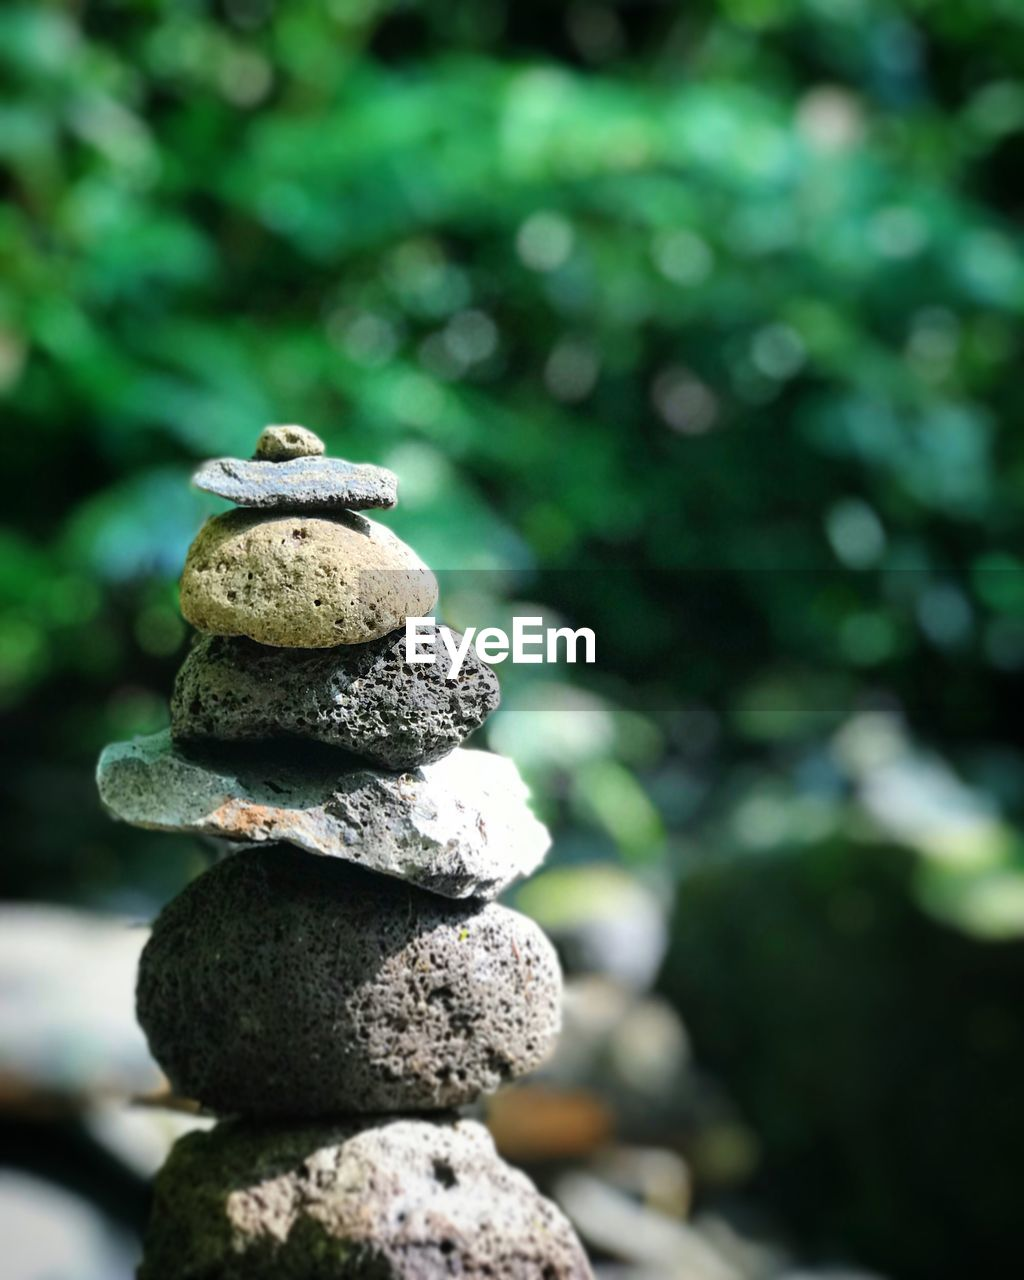 stack, stone - object, balance, solid, day, rock, nature, no people, focus on foreground, zen-like, plant, stone, rock - object, selective focus, close-up, outdoors, pebble, textured, growth, land